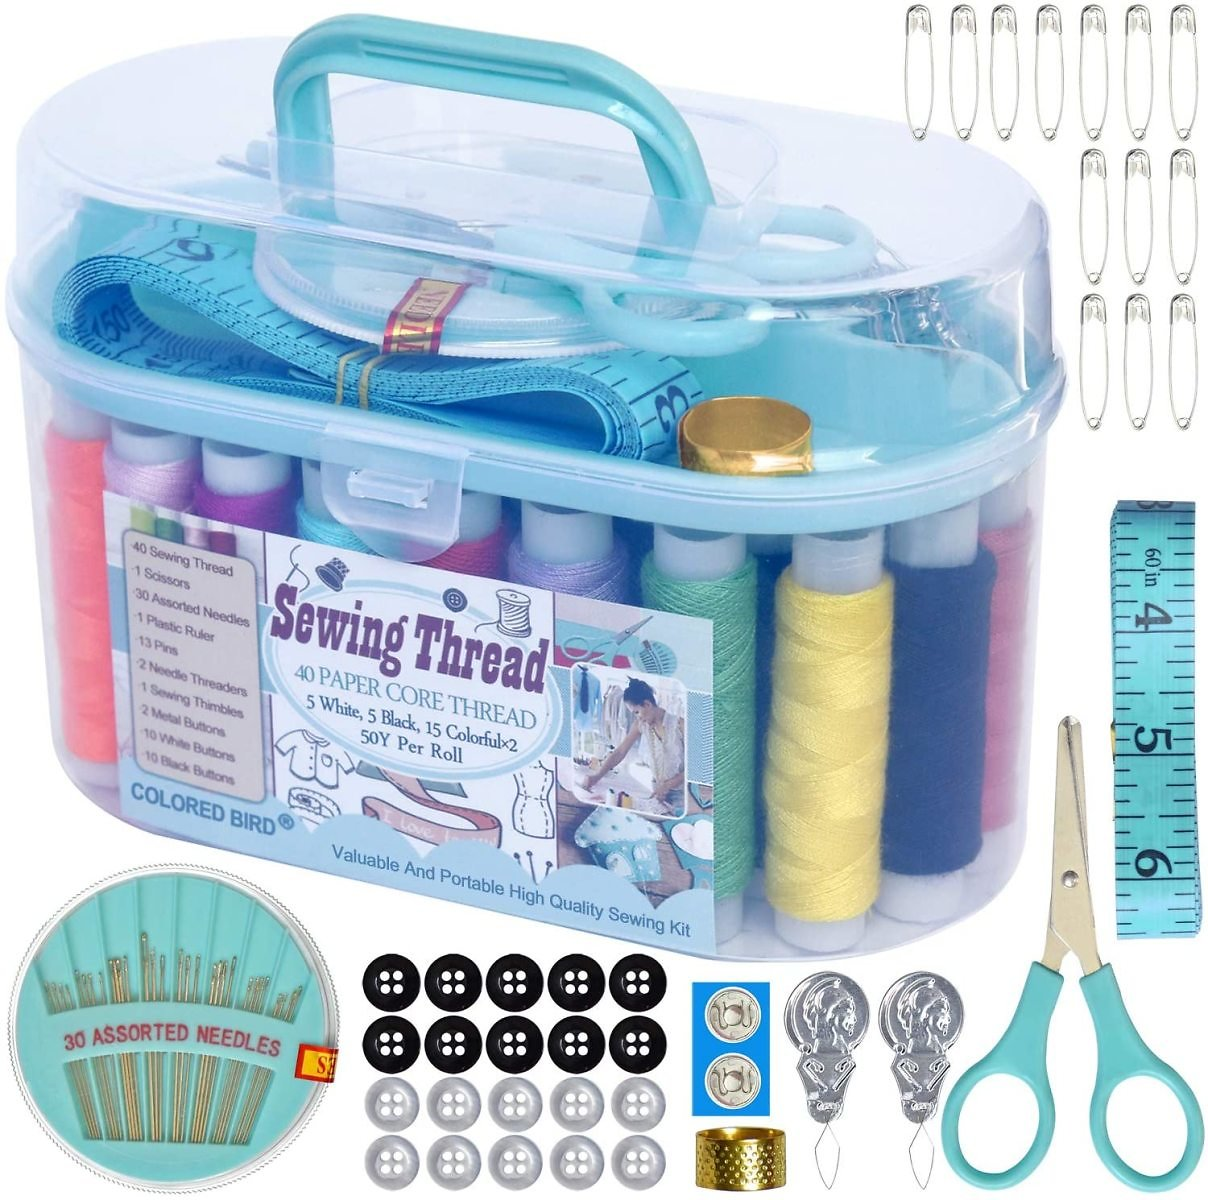 30 Colorful Spools Thread Sewing Project kit